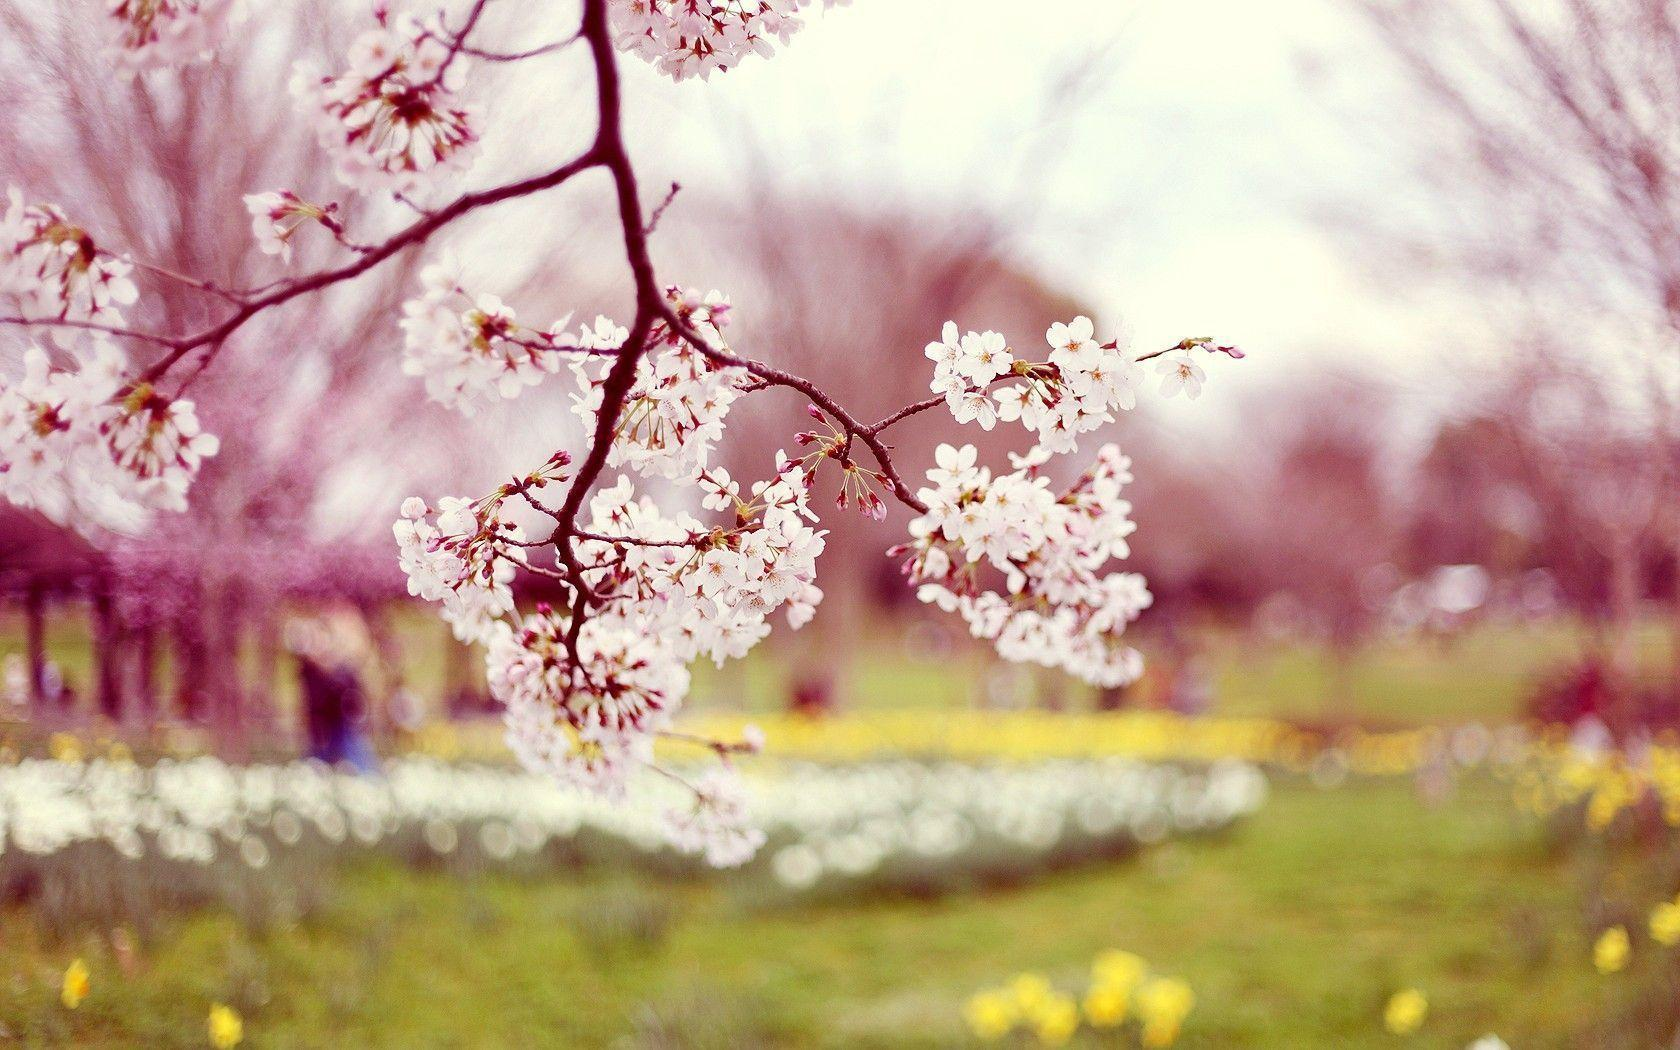 Spring background download 1680x1050